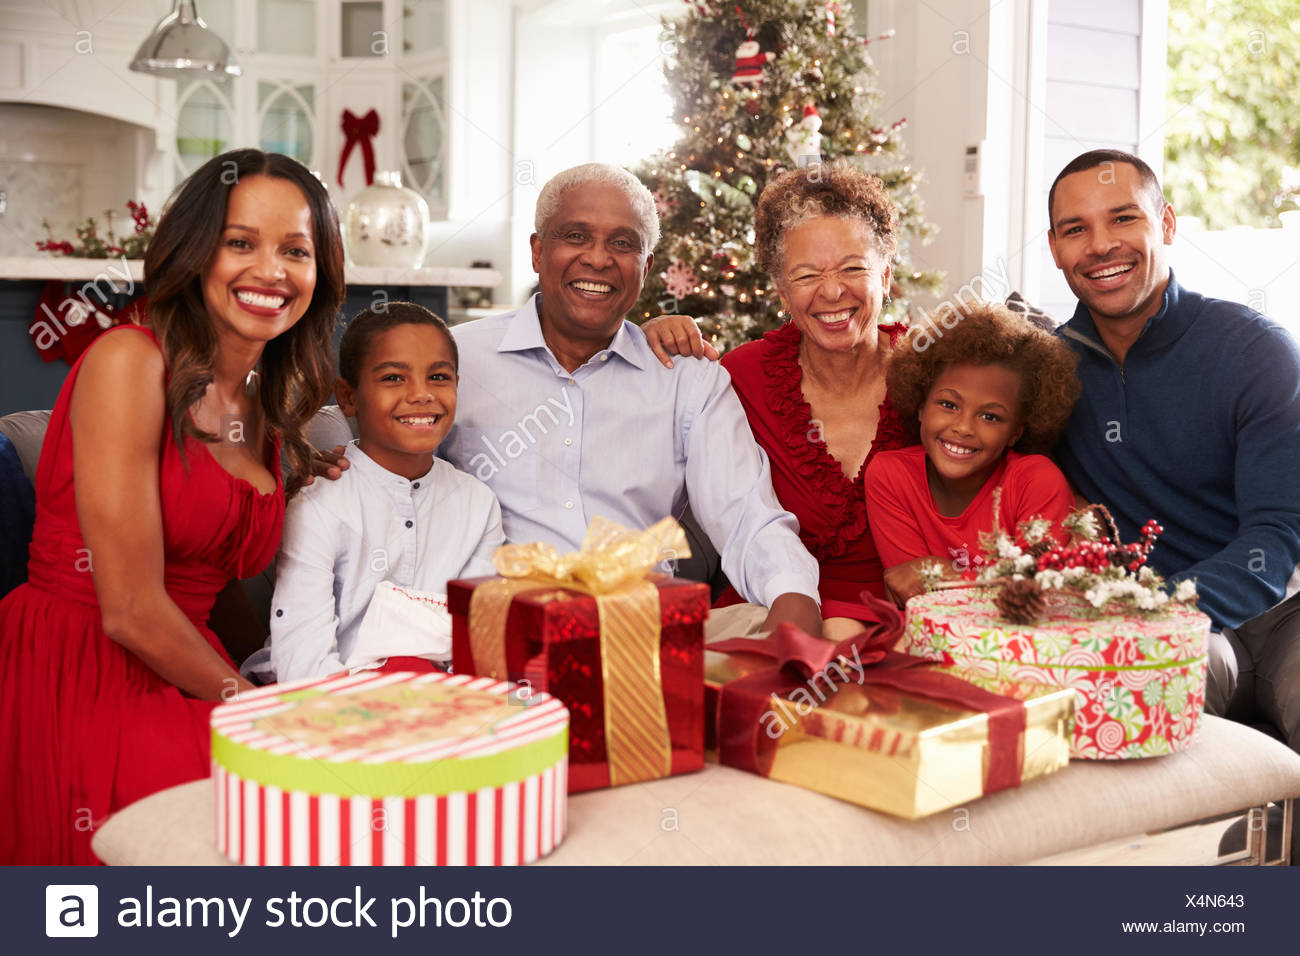 Family With Grandparents Opening Christmas Gifts Stock Photo ...